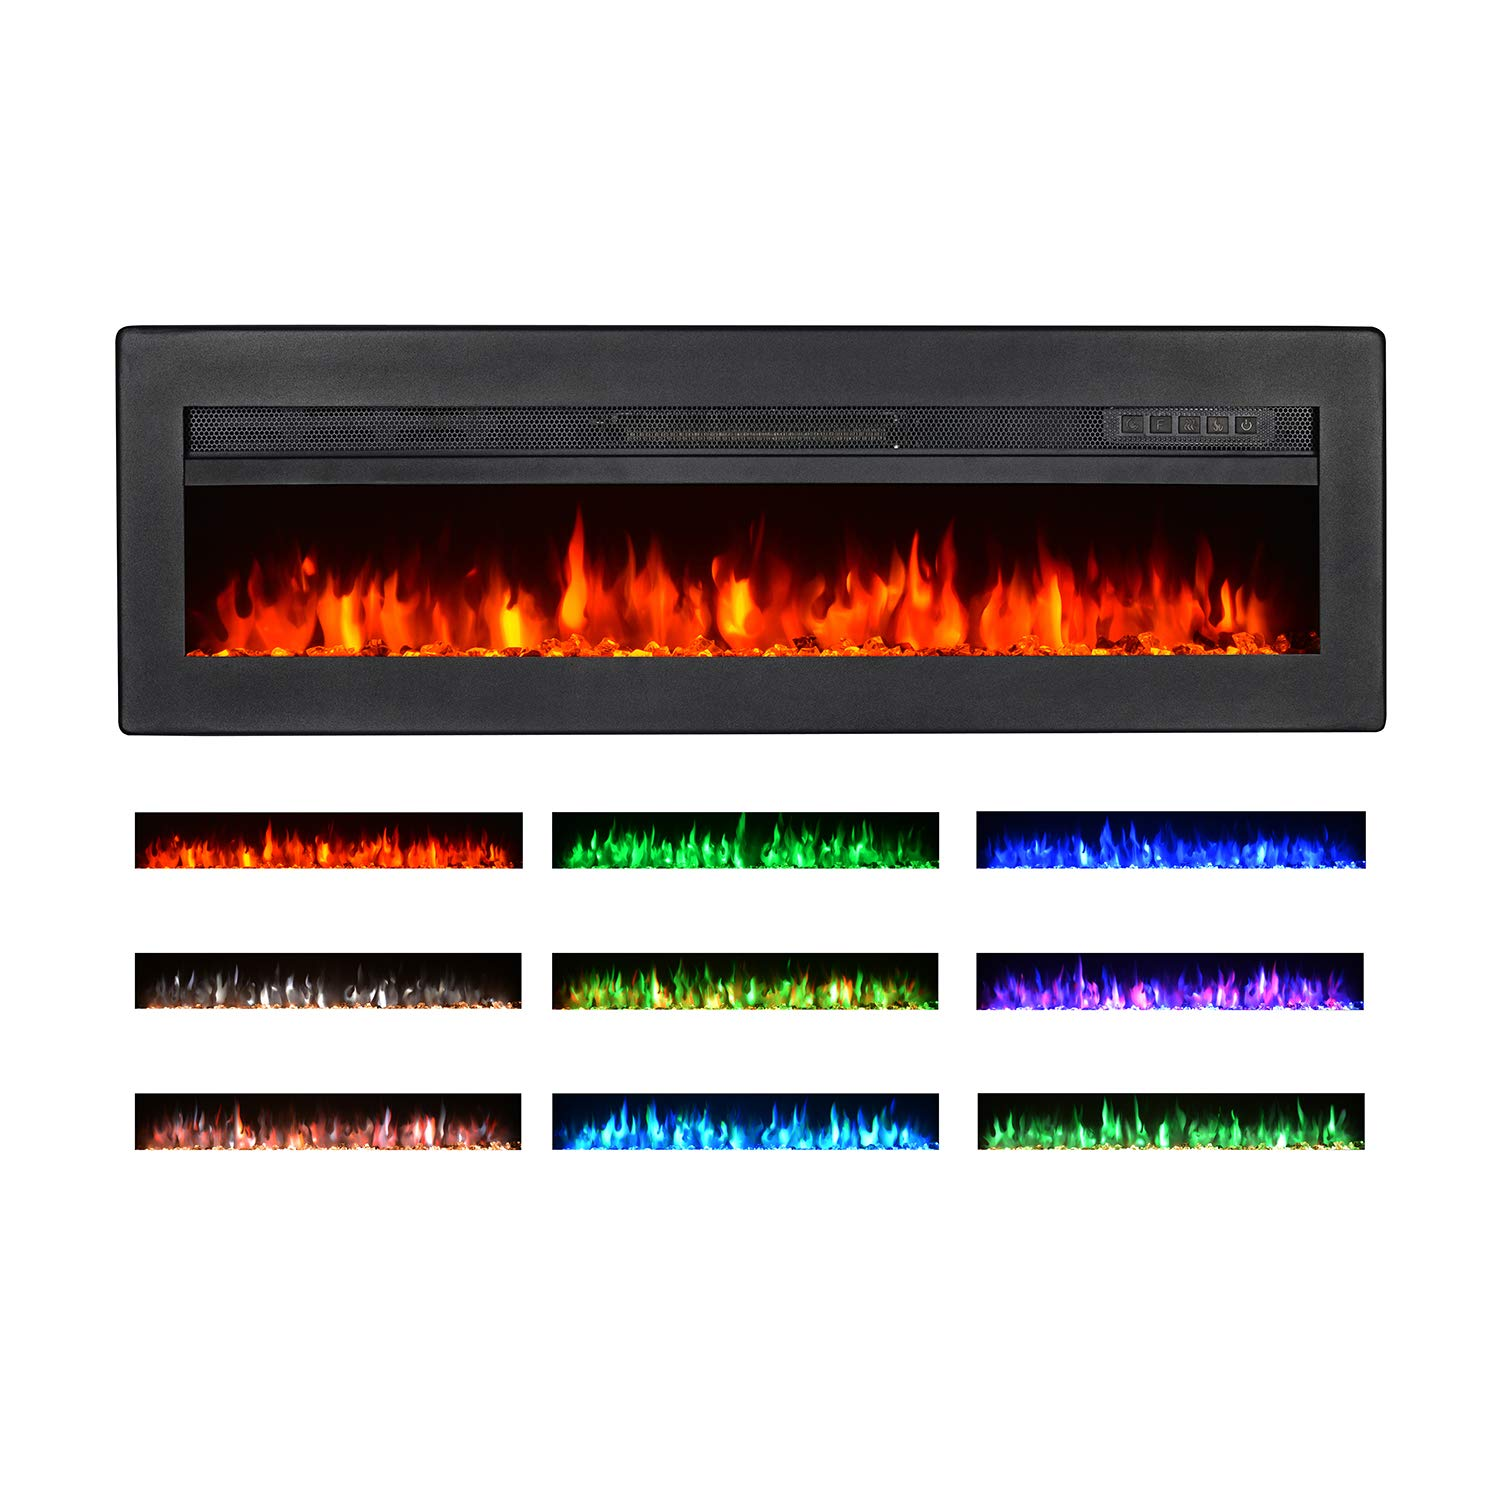 Maxhonor 40 Inches Electric Fireplace Insert Wall Mounted Freestanding Heater with Remote Control, 1500/750W, Black by Maxhonor